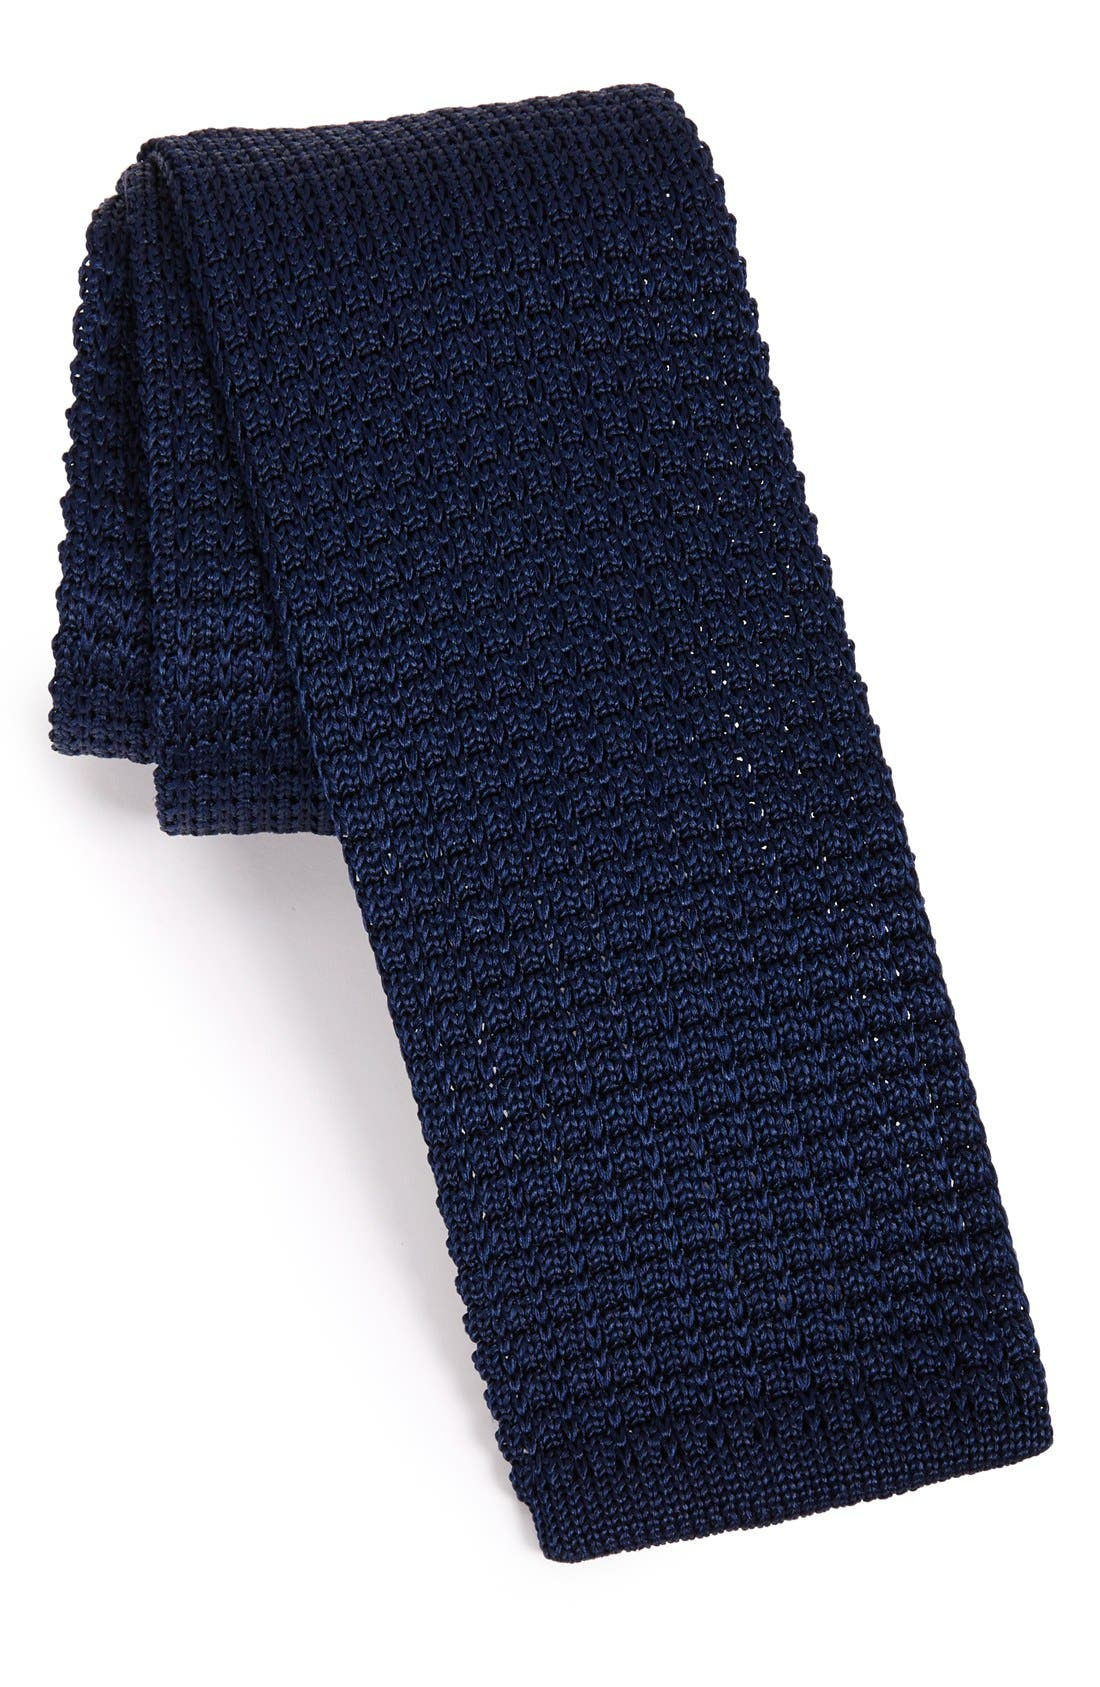 Knit Silk Tie,                             Main thumbnail 1, color,                             NAVY